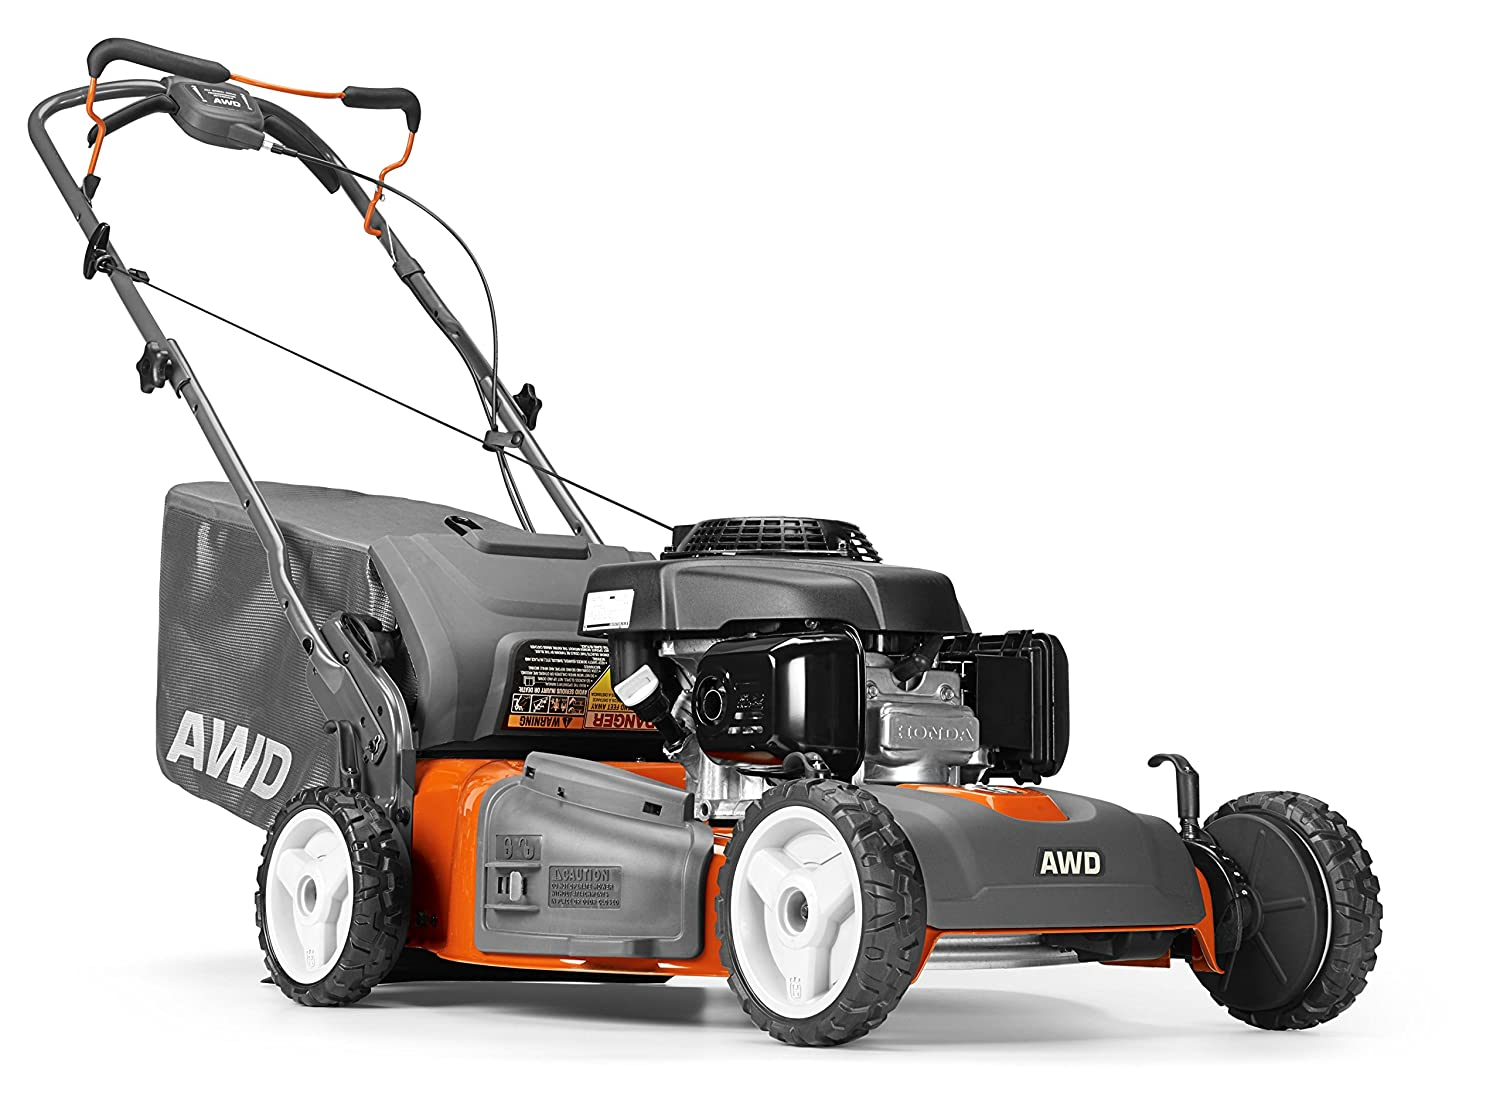 Husqvarna 961450020 HU700AWD Honda GCV160cc 3-in-1 All Wheel Drive 4X4 Mower in 22-Inch Deck